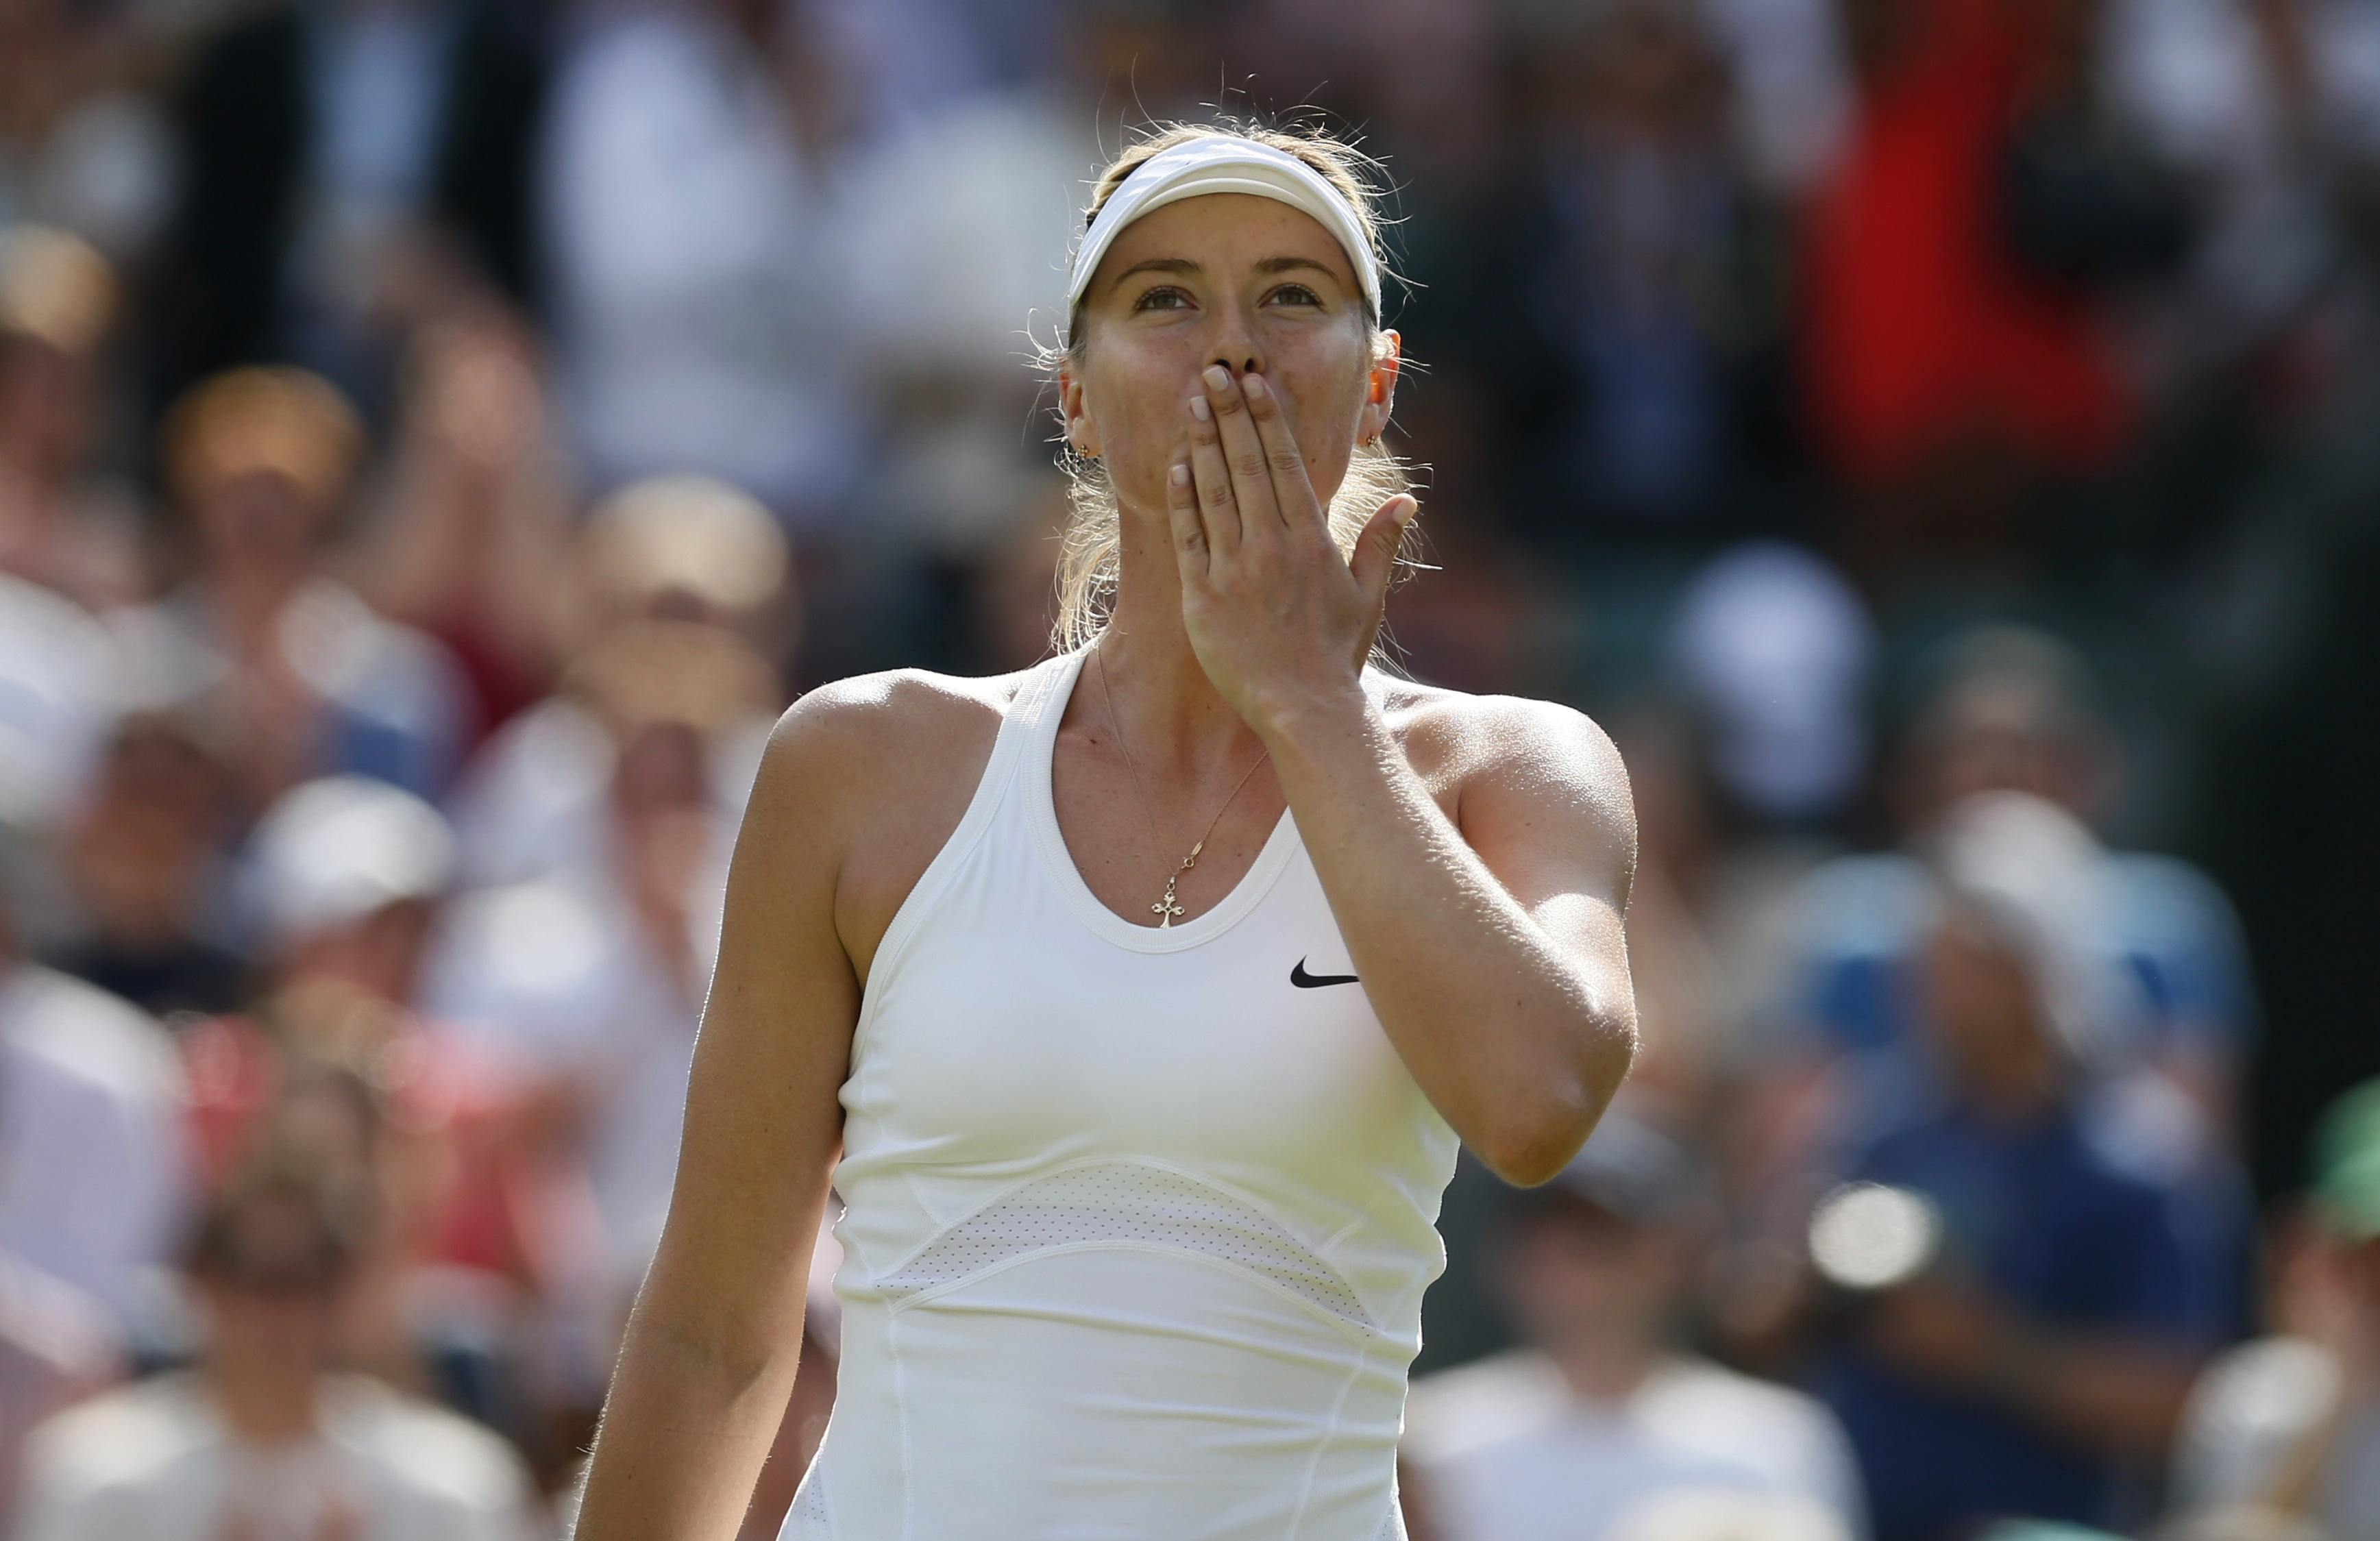 Maria Sharapova of Russia blows a kiss after defeating Samantha Murray of Britain in their women's singles tennis match at the Wimbledon Tennis Championships, in London June 24, 2014. REUTERS/Stefan Wermuth (BRITAIN - Tags: SPORT TENNIS) - RTR3VHMS